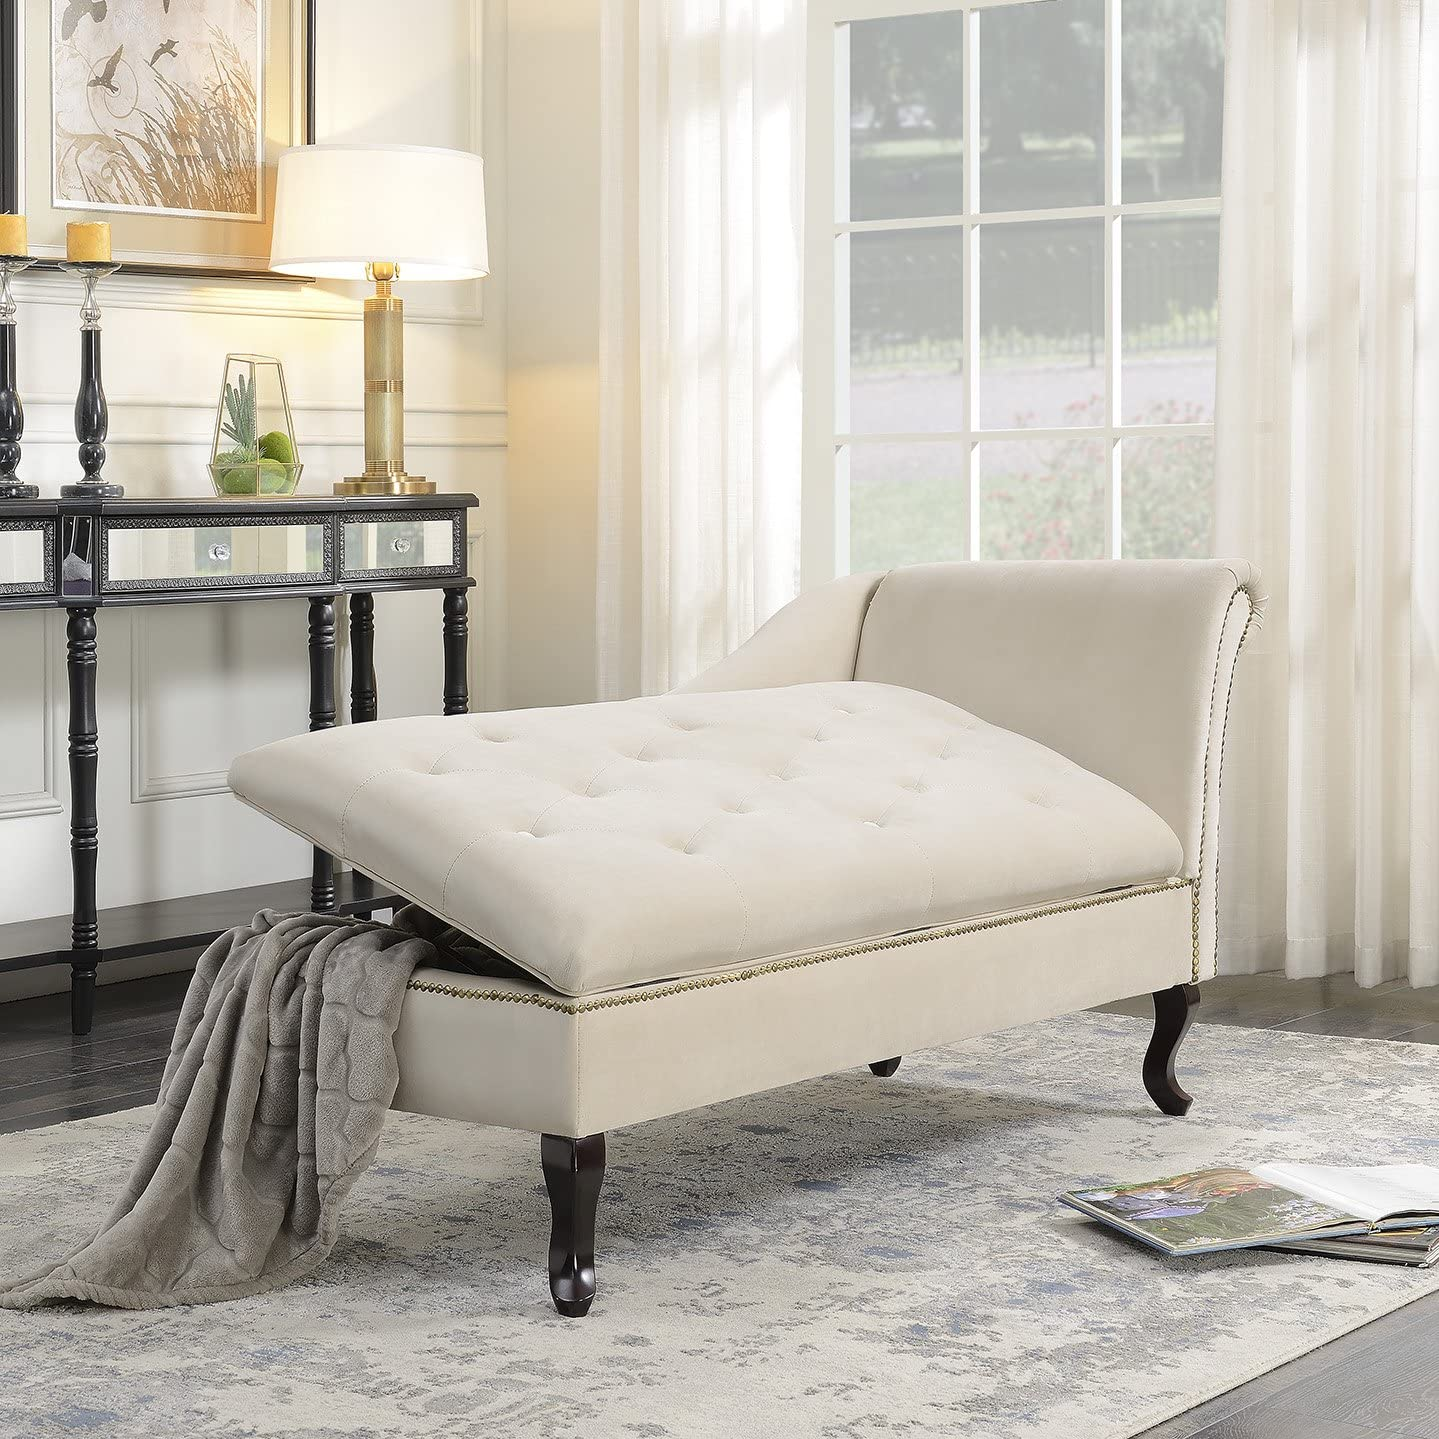 Nailhead Trim Fold Open Lid Storage Chaise Lounge Spa Chair Tufted Couch